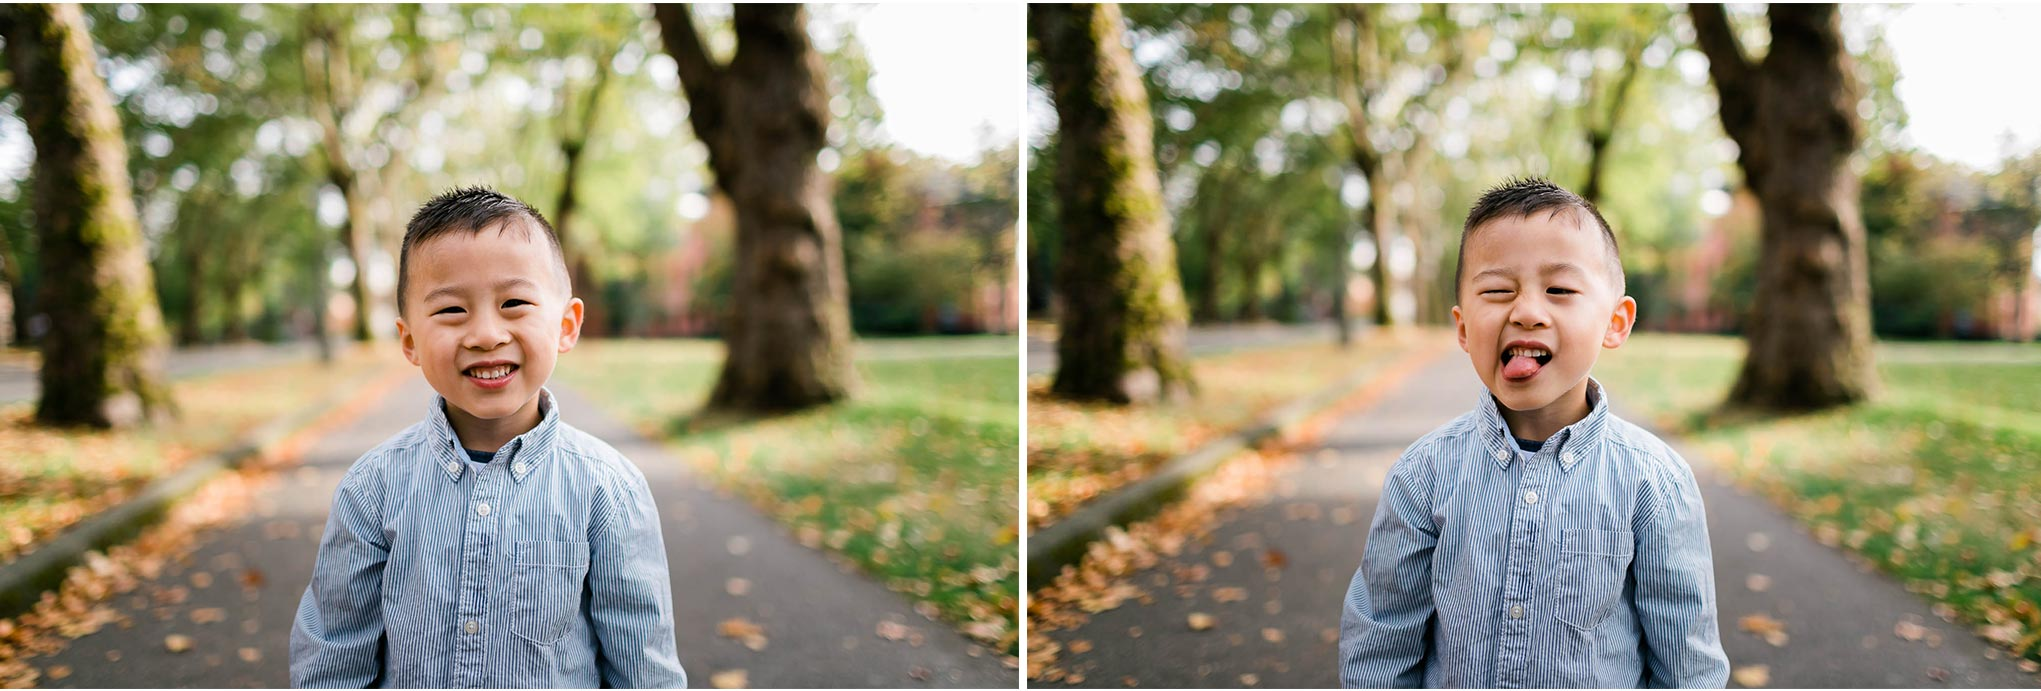 Boy making funny faces | Seattle Family Photographer | By G. Lin Photography